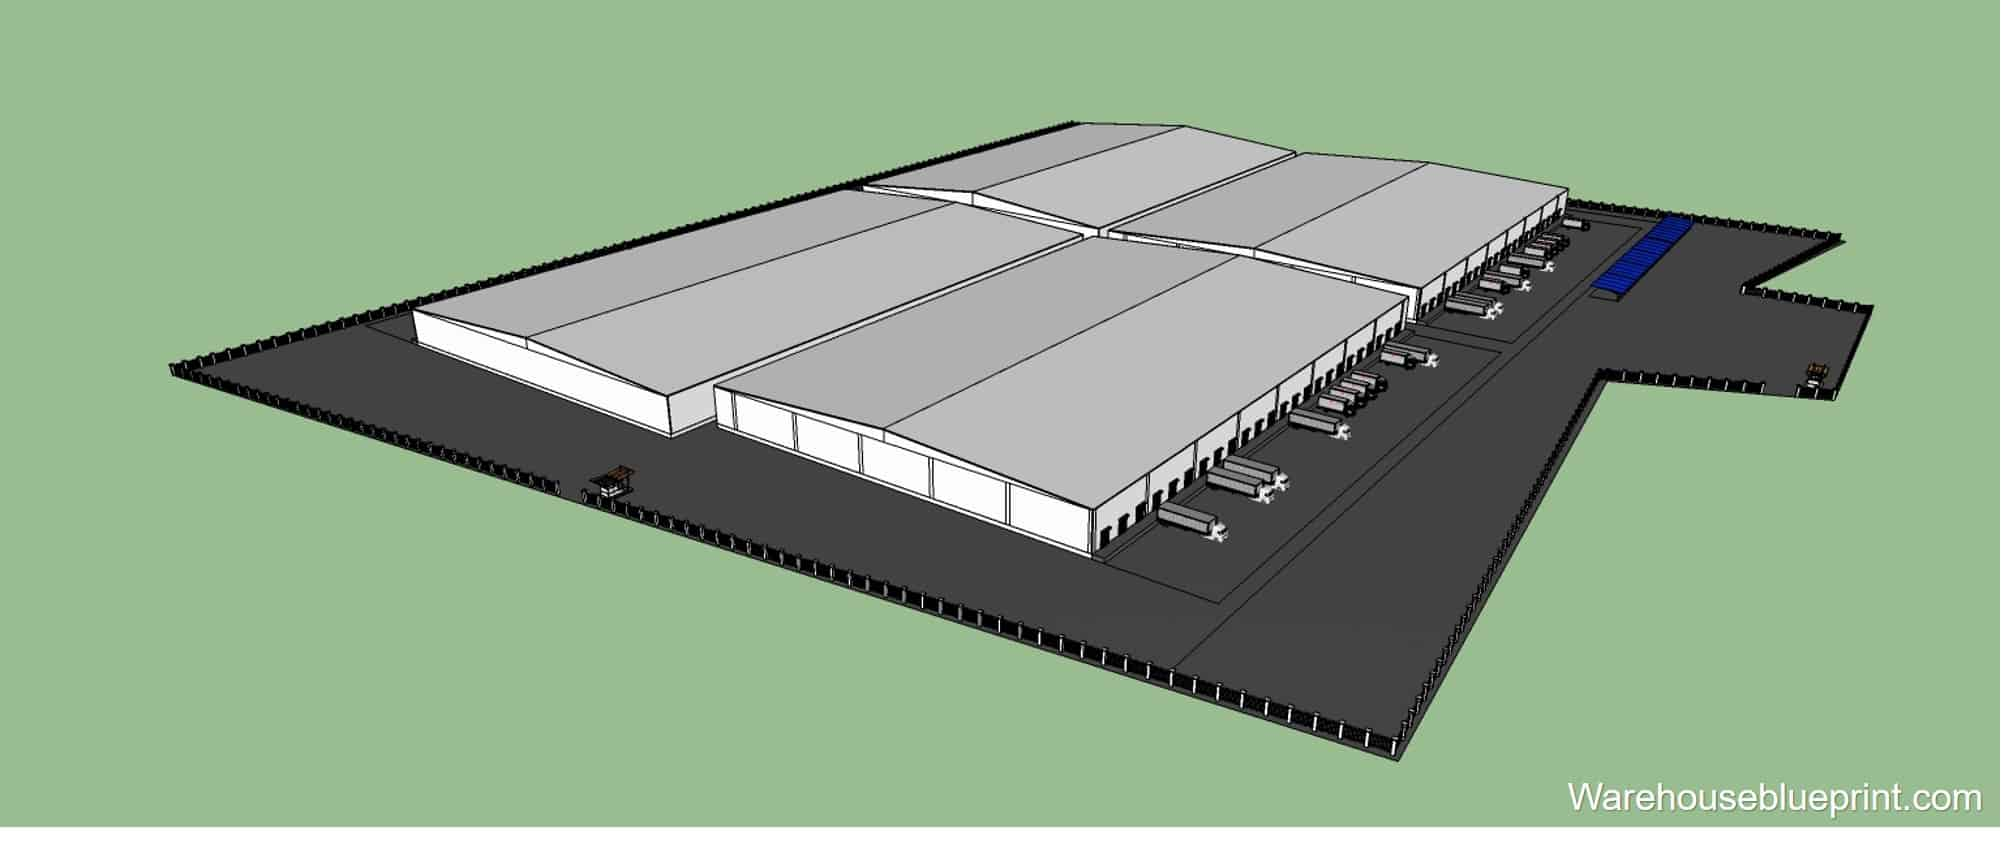 Warehouse Layout 4